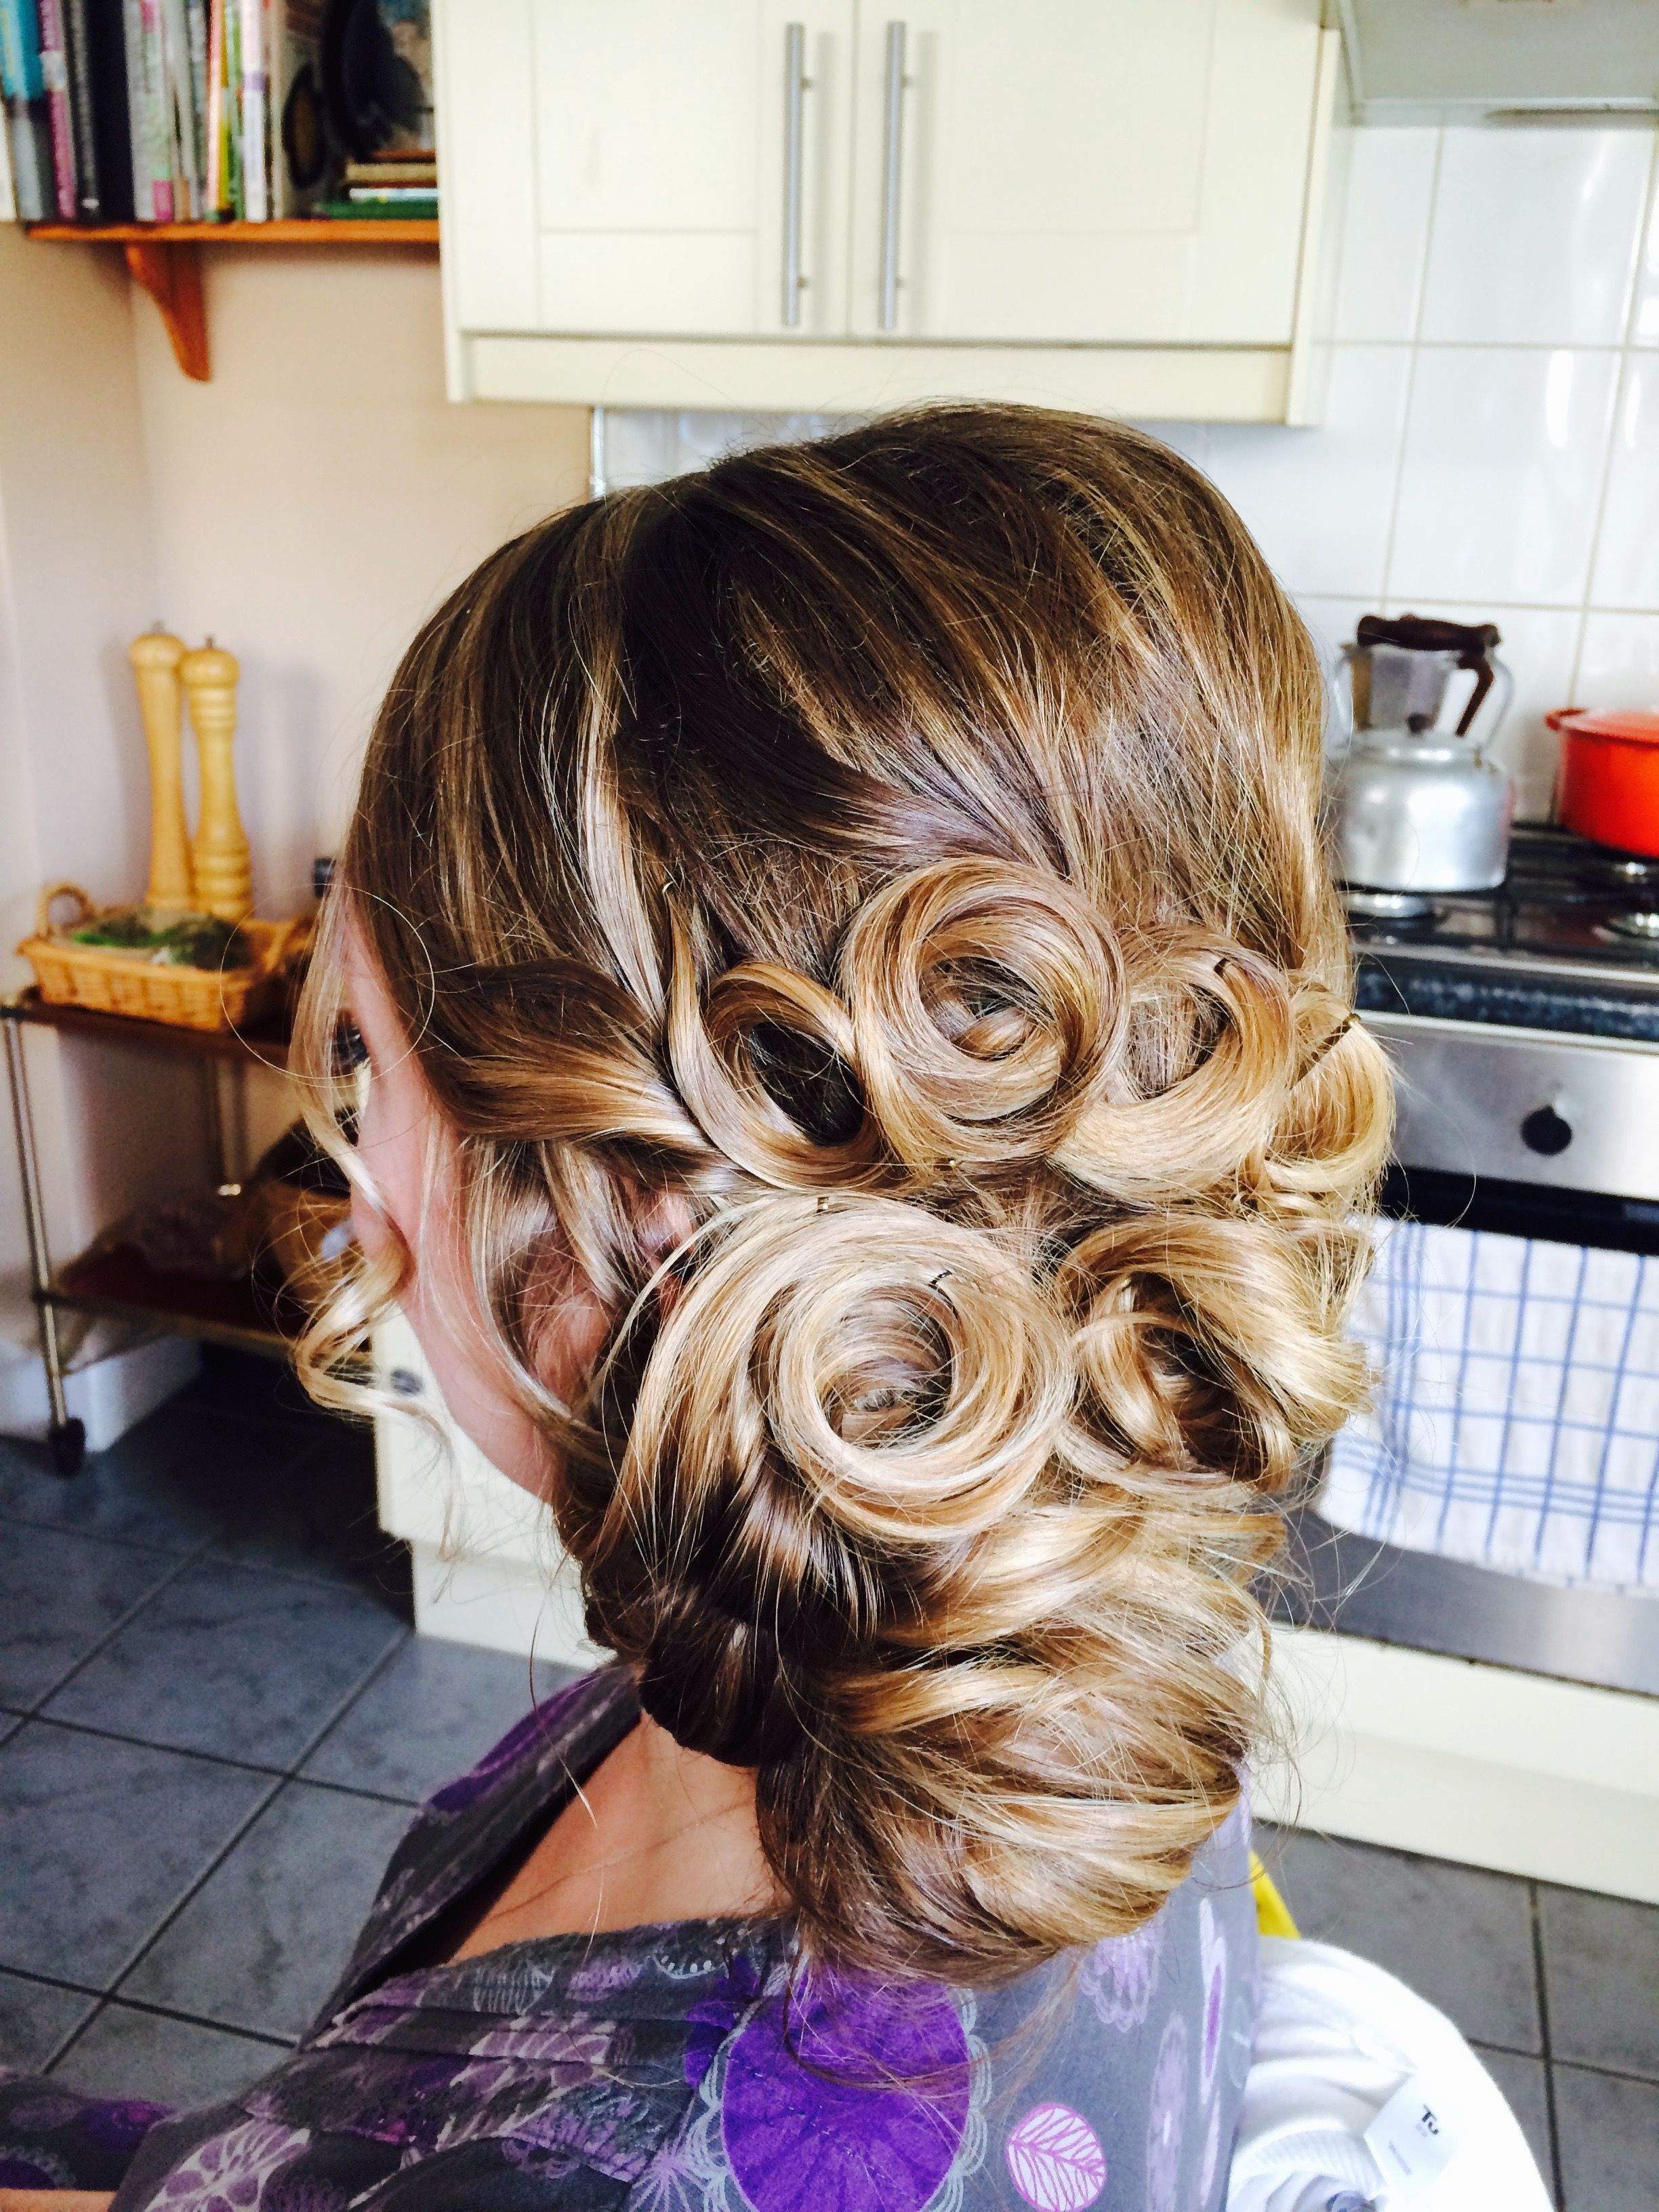 Another of our brides at her wedding trial